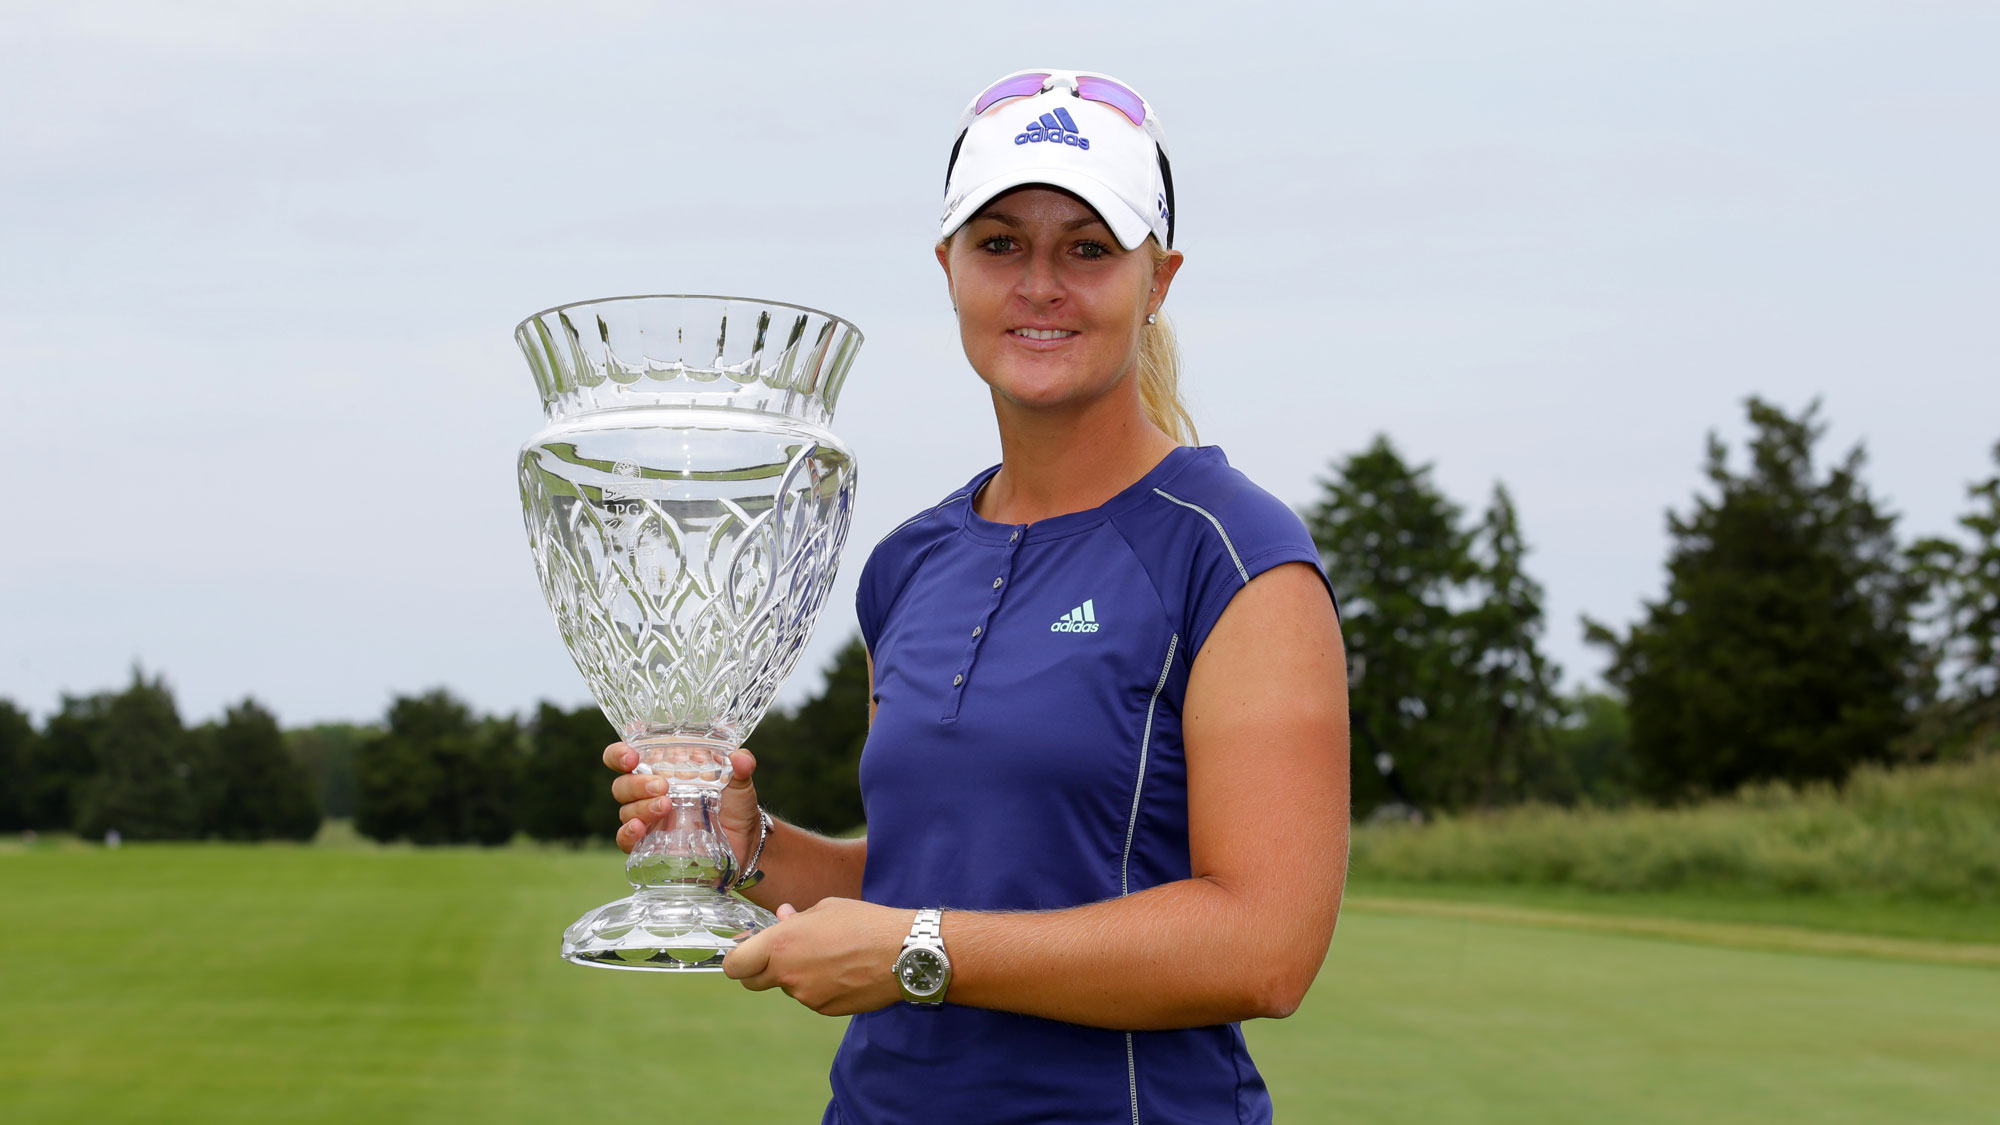 Image result for Annika wins ShopRite classic